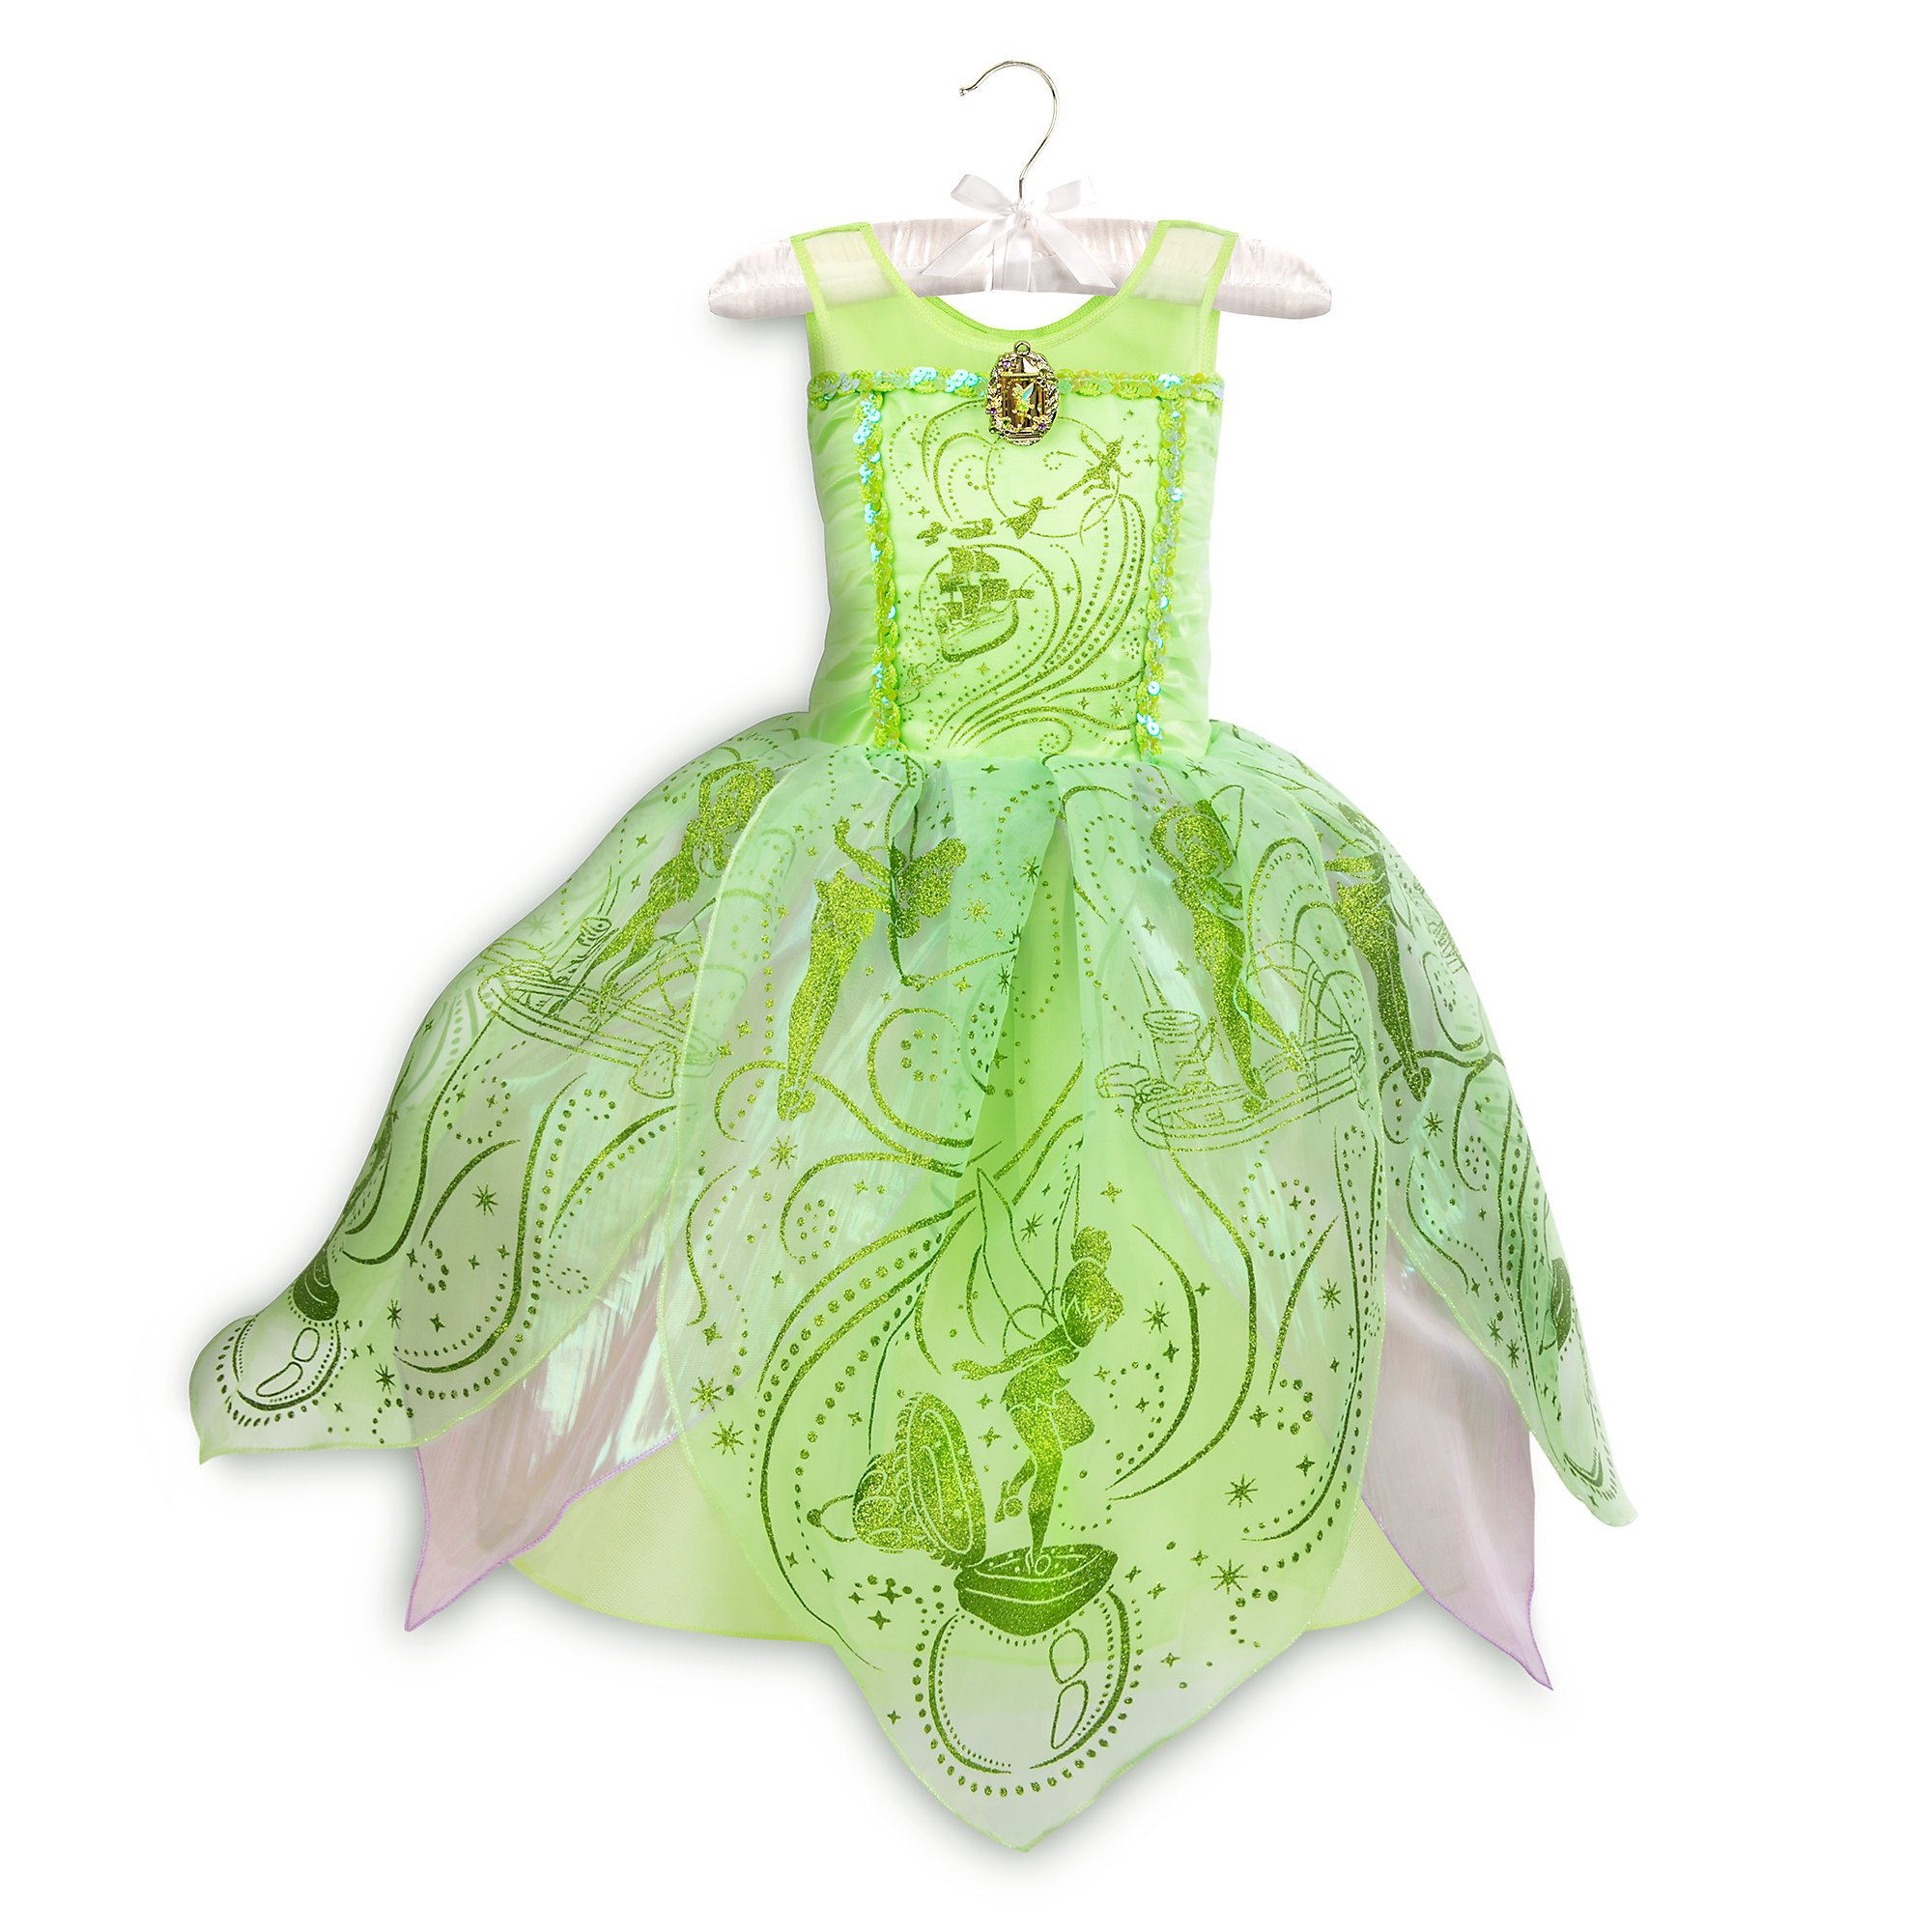 Disney Tinker Bell Costume for Kids - Peter Pan Size 7/8 Green